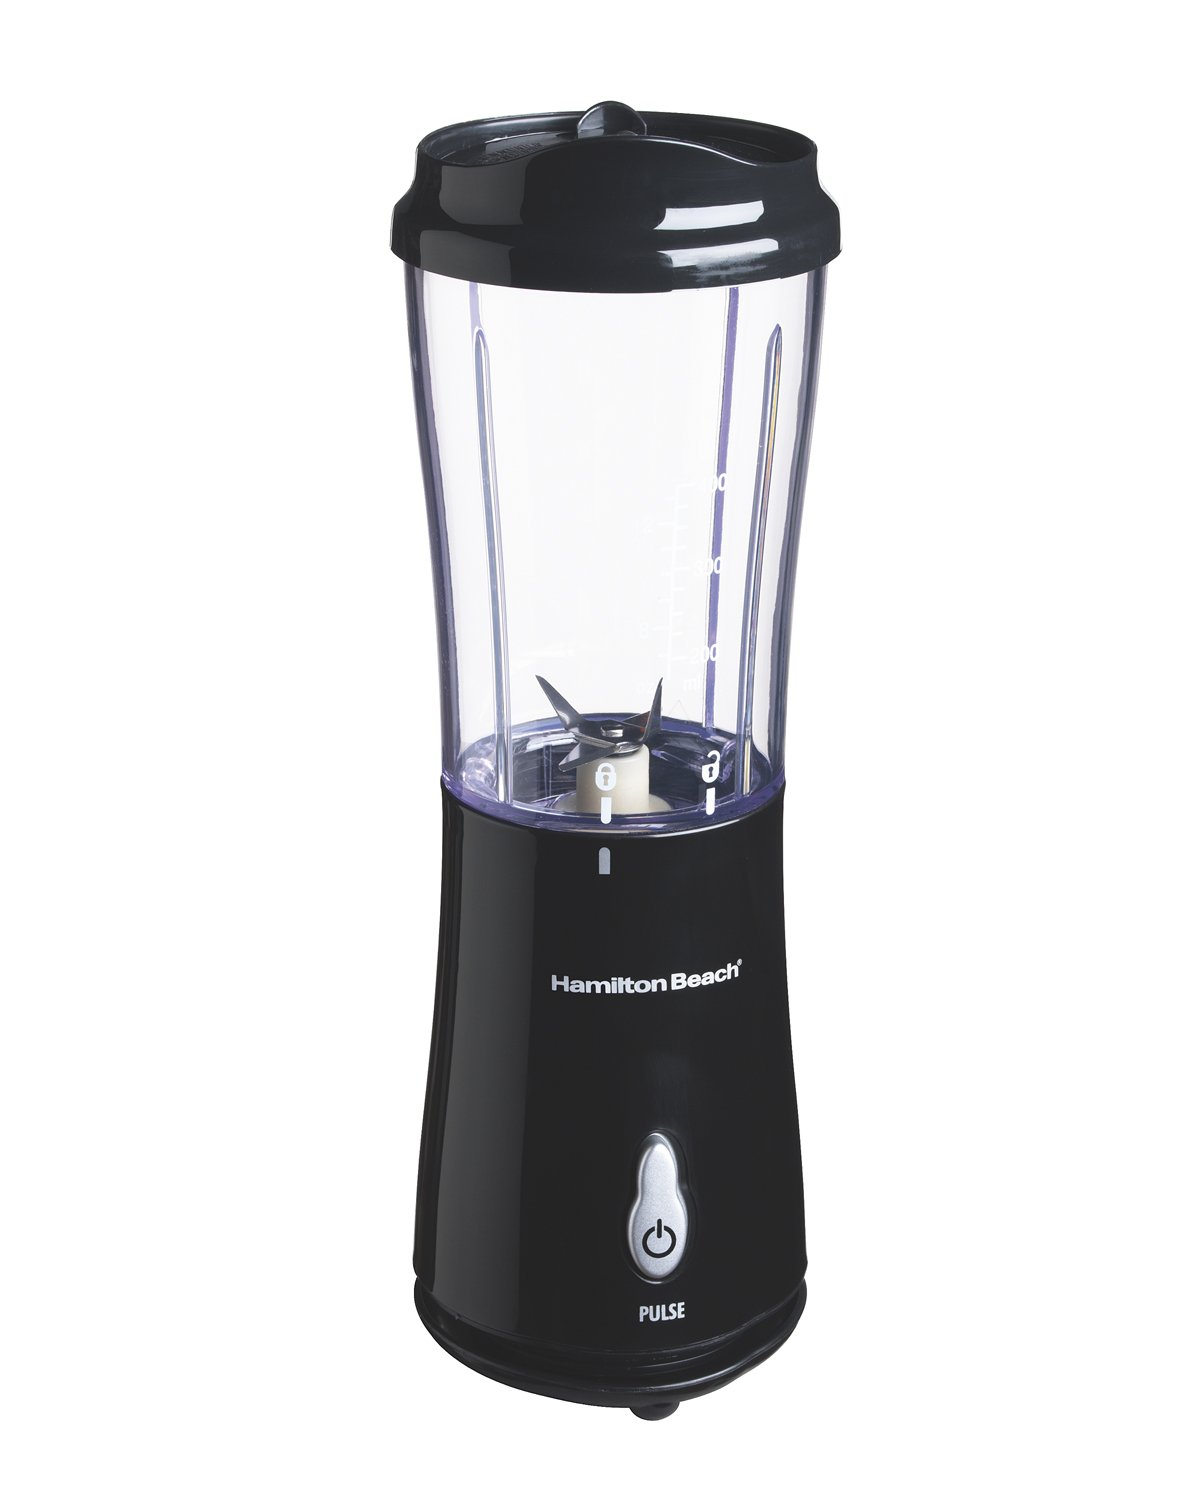 new hamilton beach personal blender mixer travel drink black smoothies shake ebay. Black Bedroom Furniture Sets. Home Design Ideas